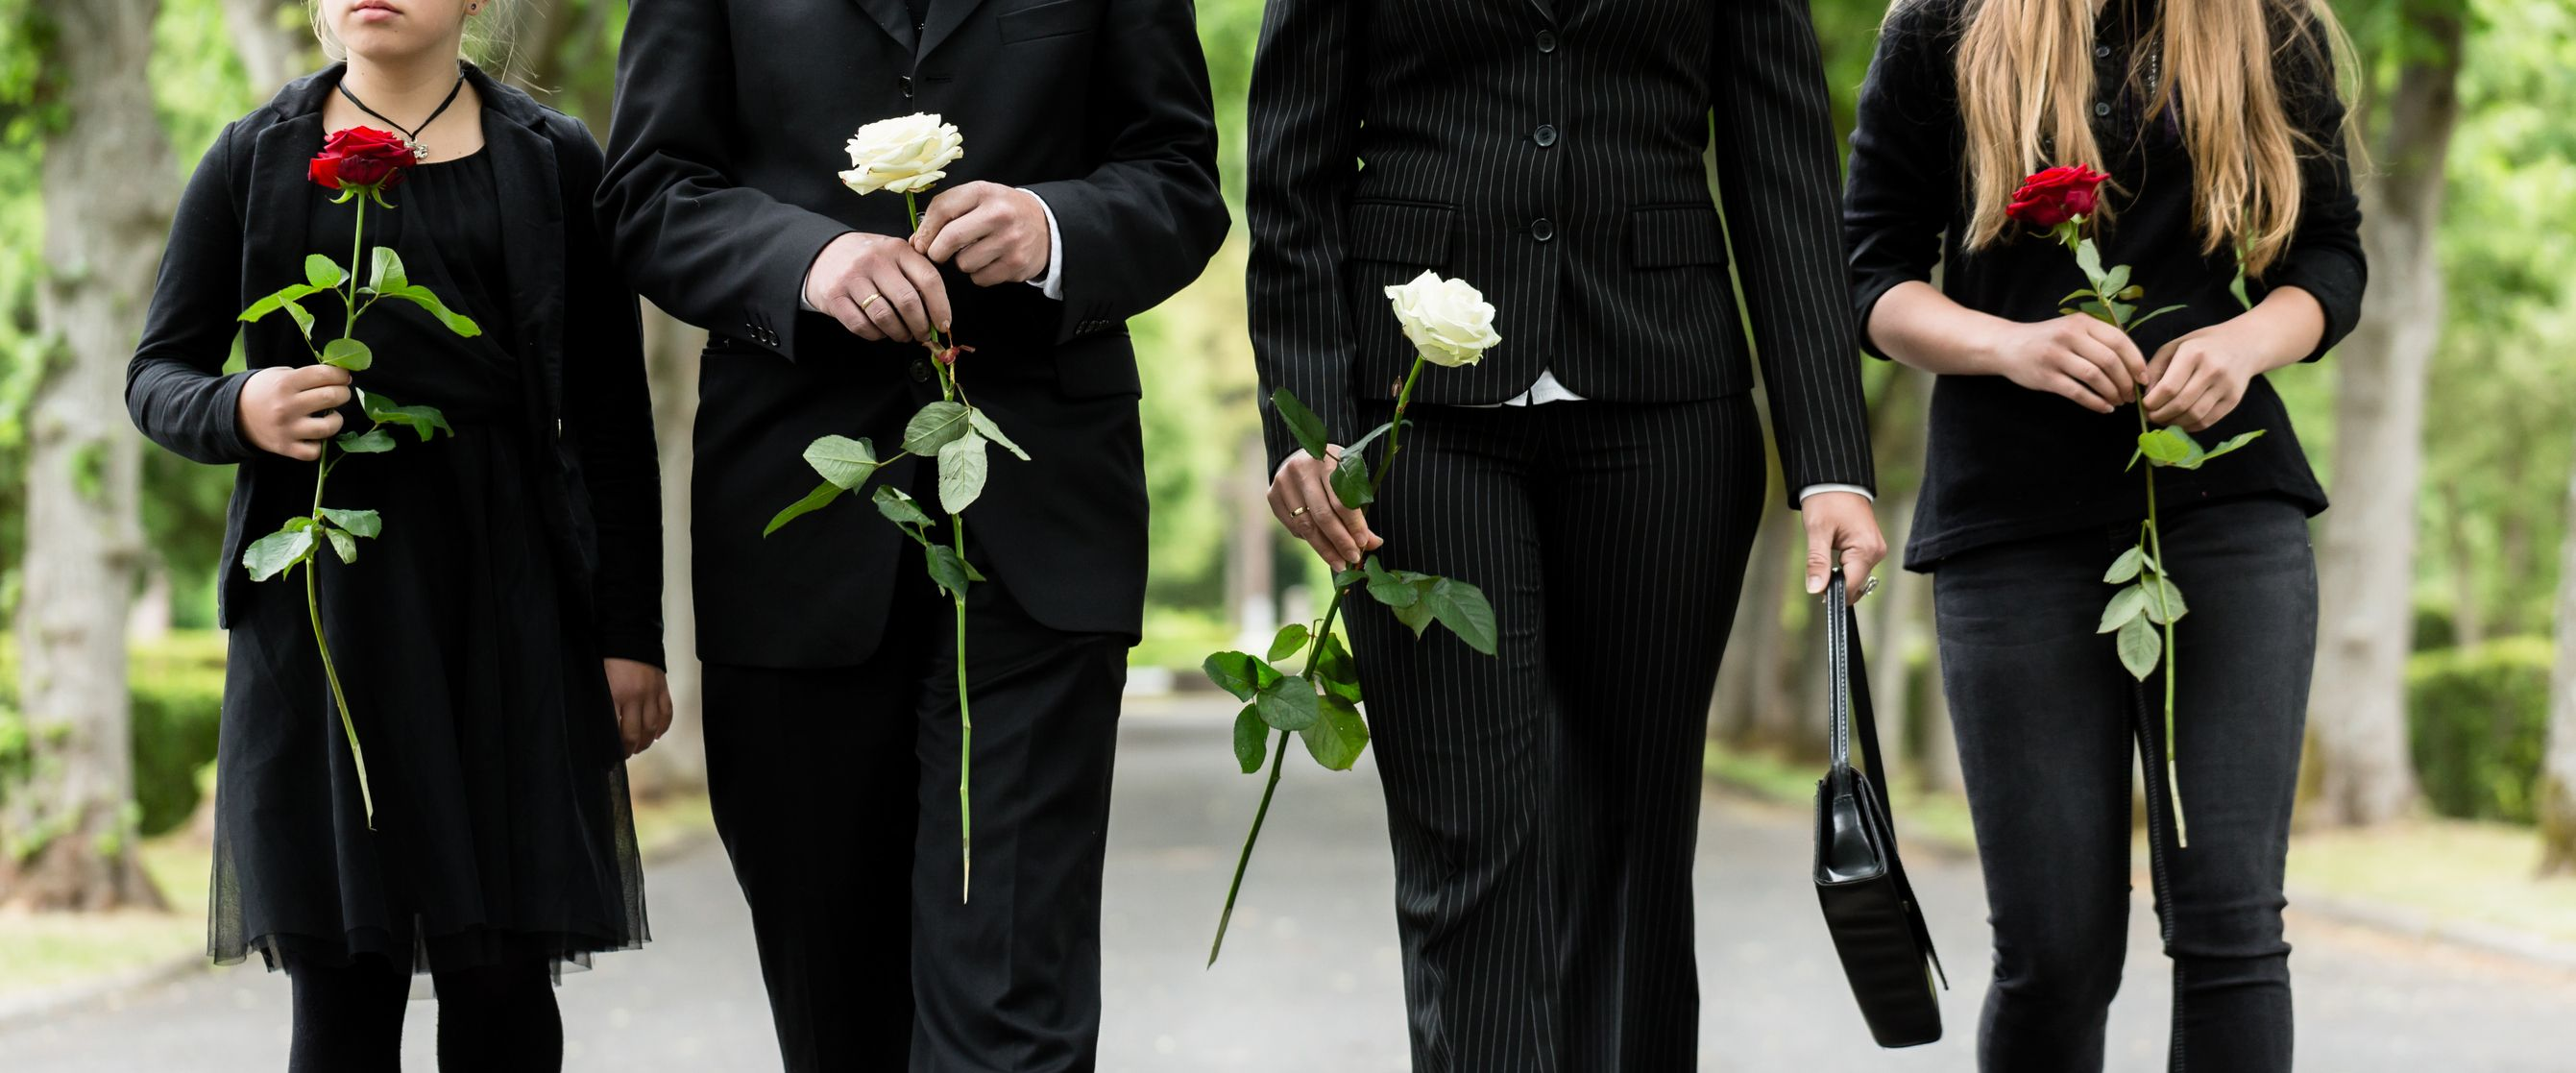 Midsection Of Family Holding Roses On Road During Funeral. | Quelle: Stock-Fotografie